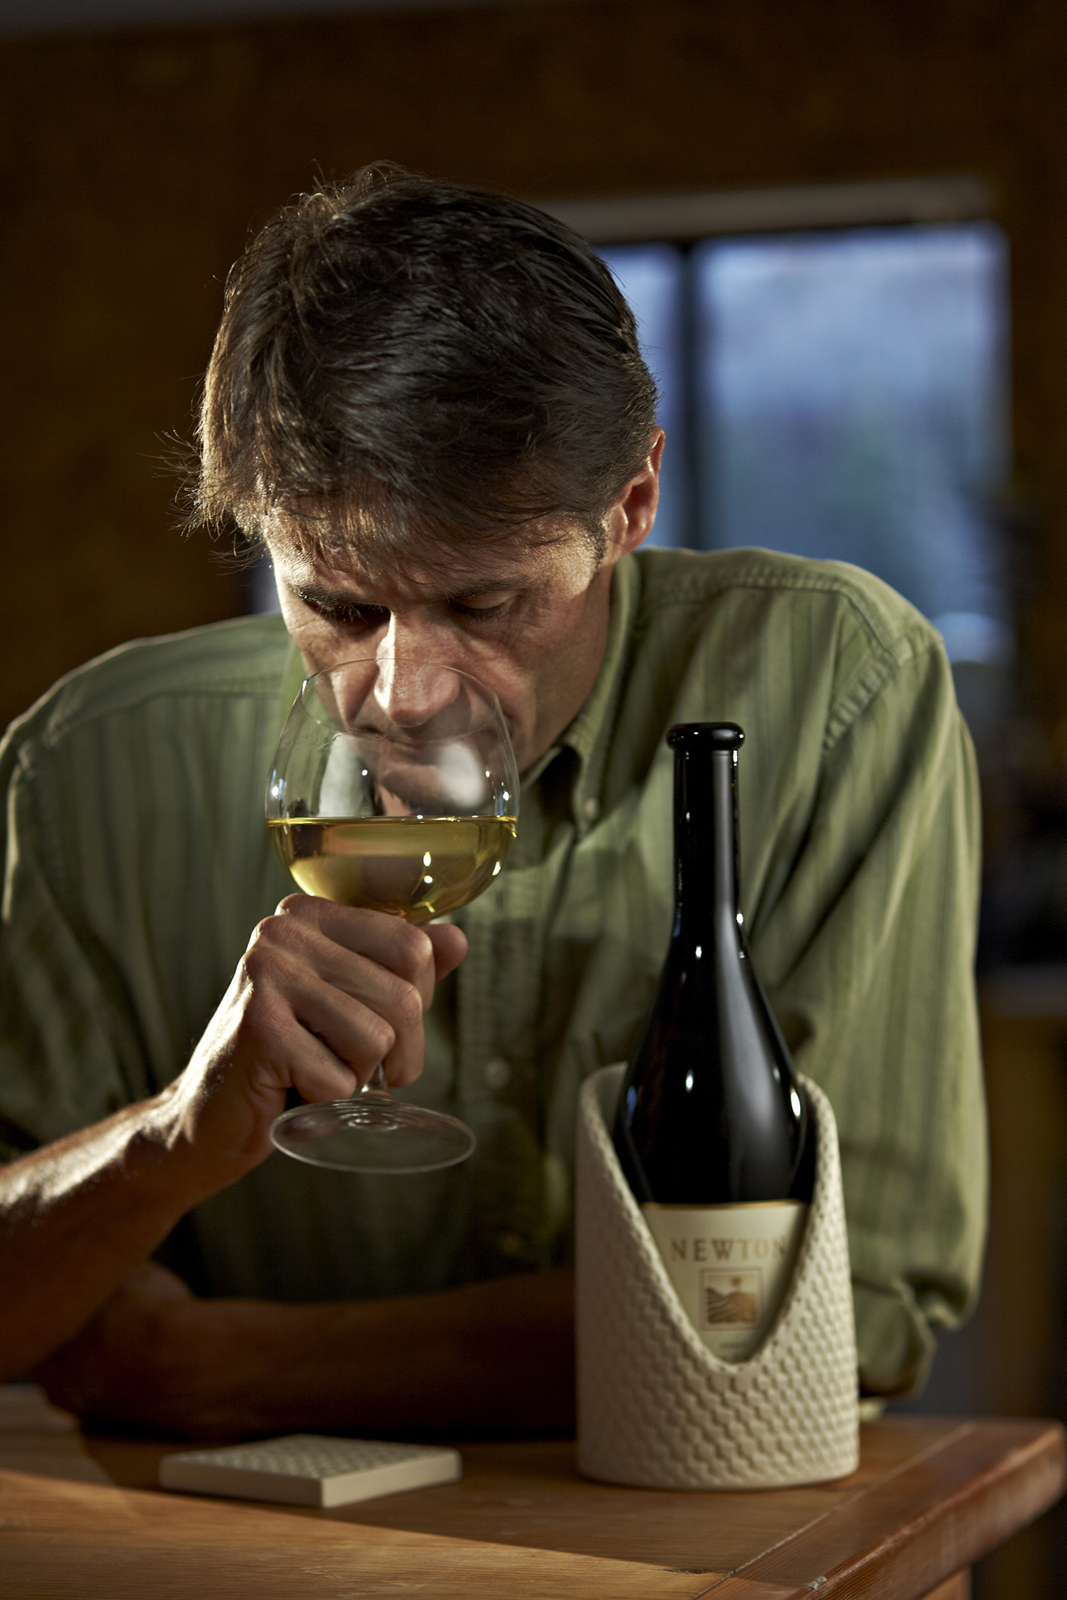 """When chilled to 55 degrees Fahrenheit, Wisner said, the taste of Newton Vineyard's Chardonnay """"explodes in your mouth."""""""